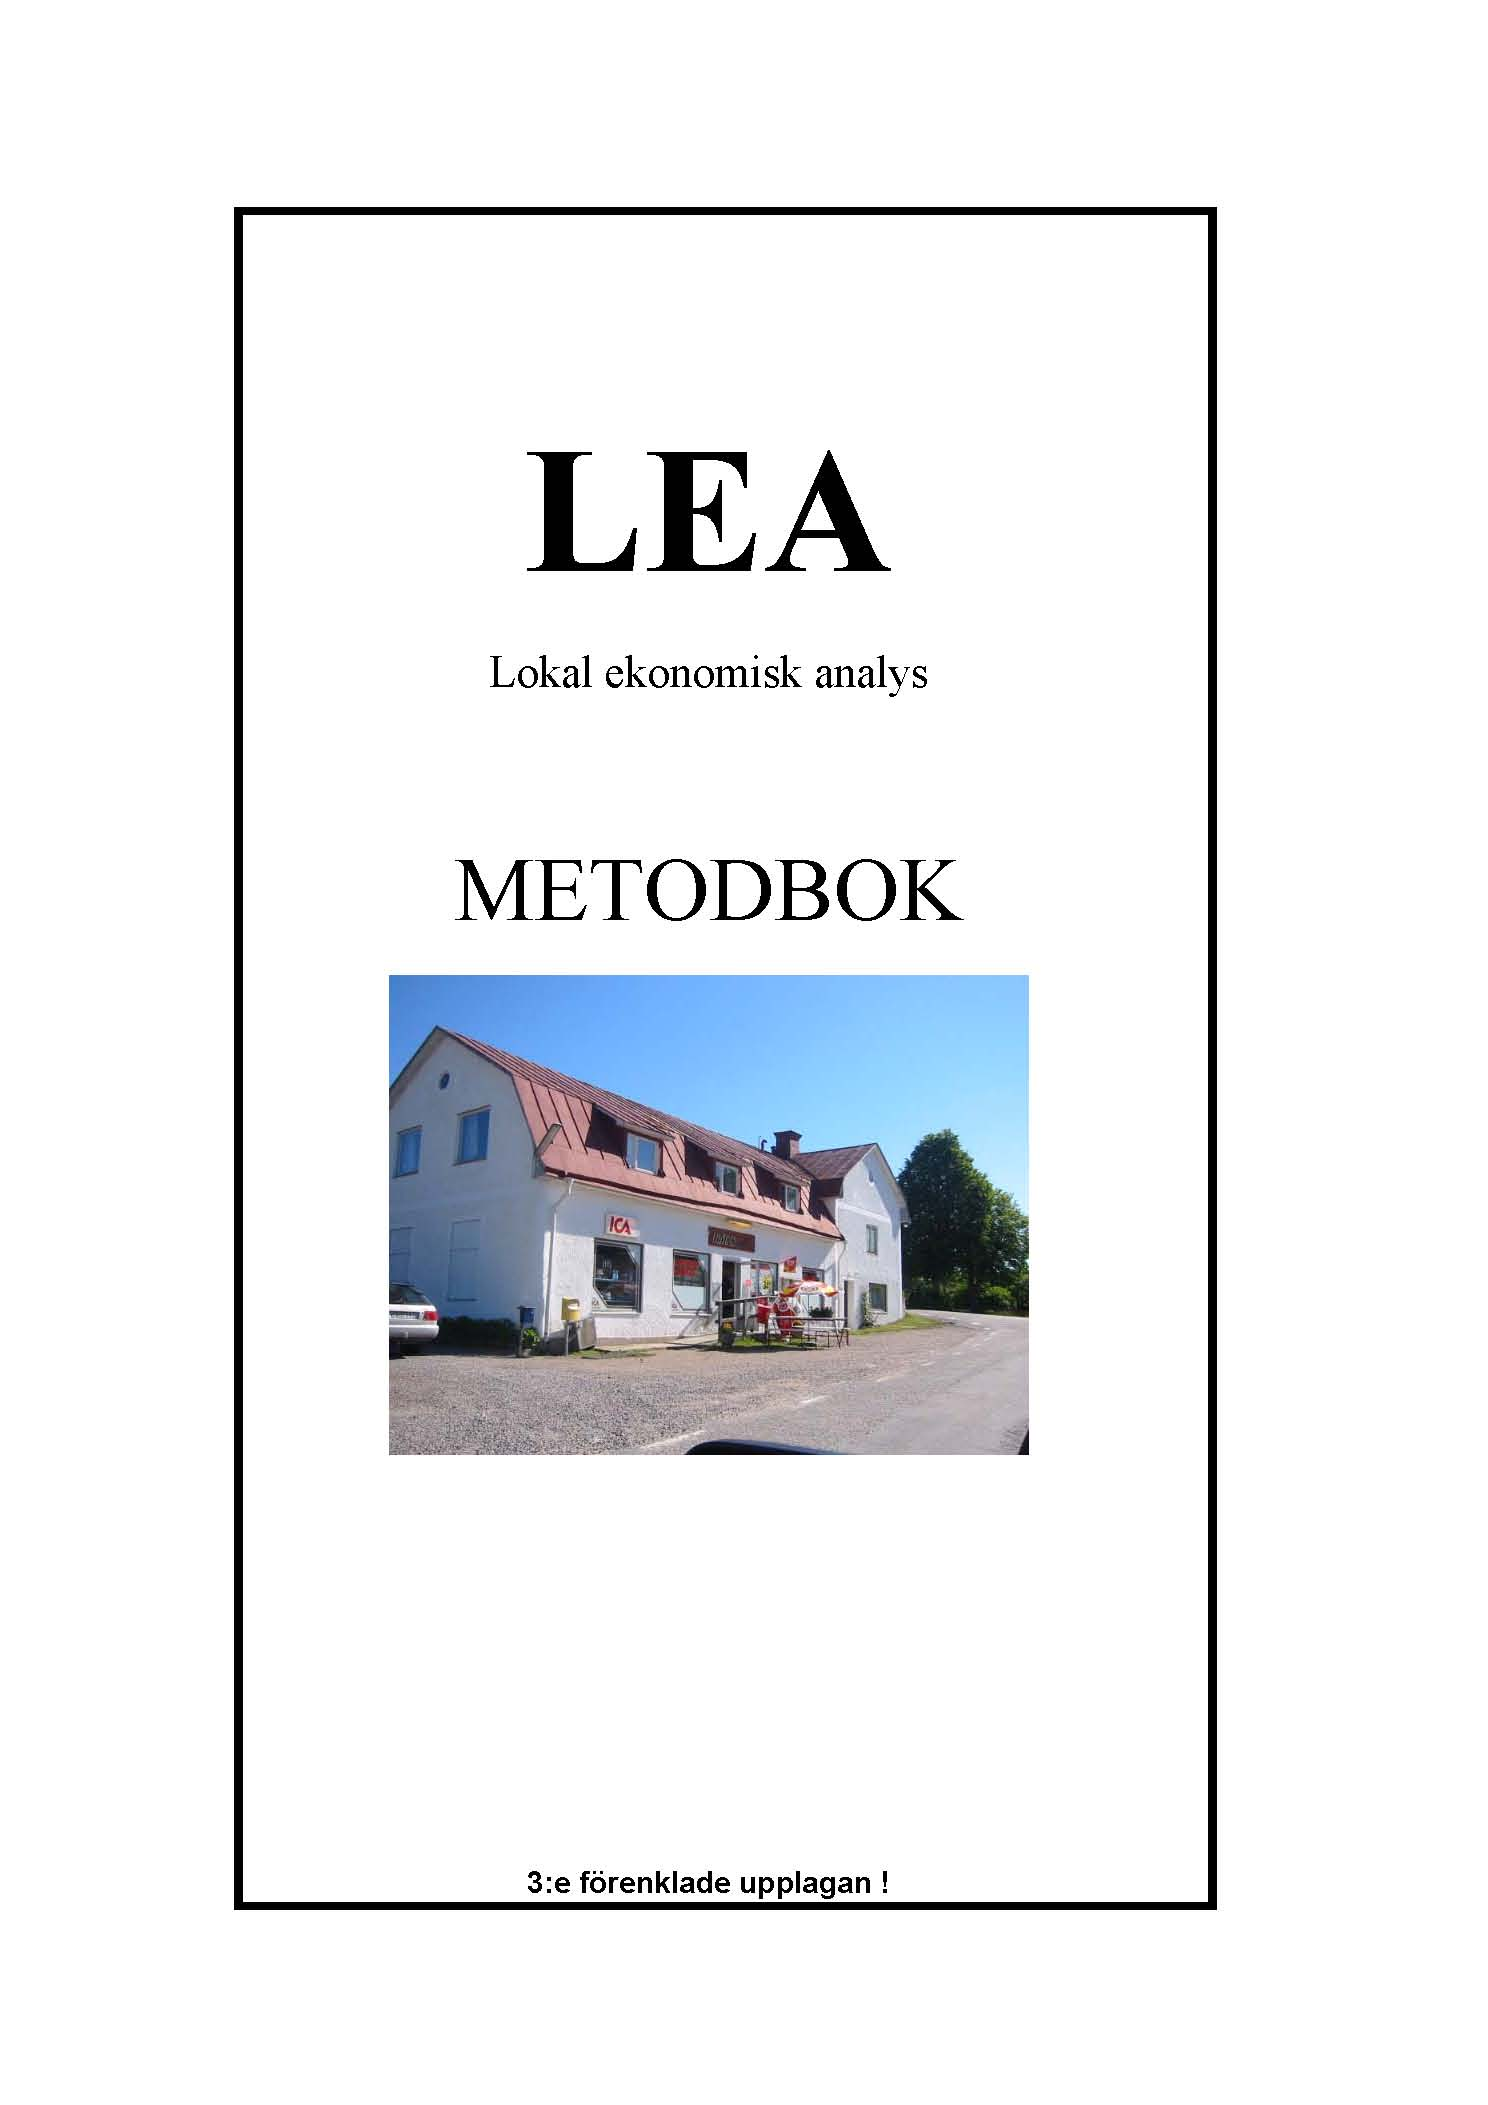 Ladda ner metodboken om hur man gr en LEA